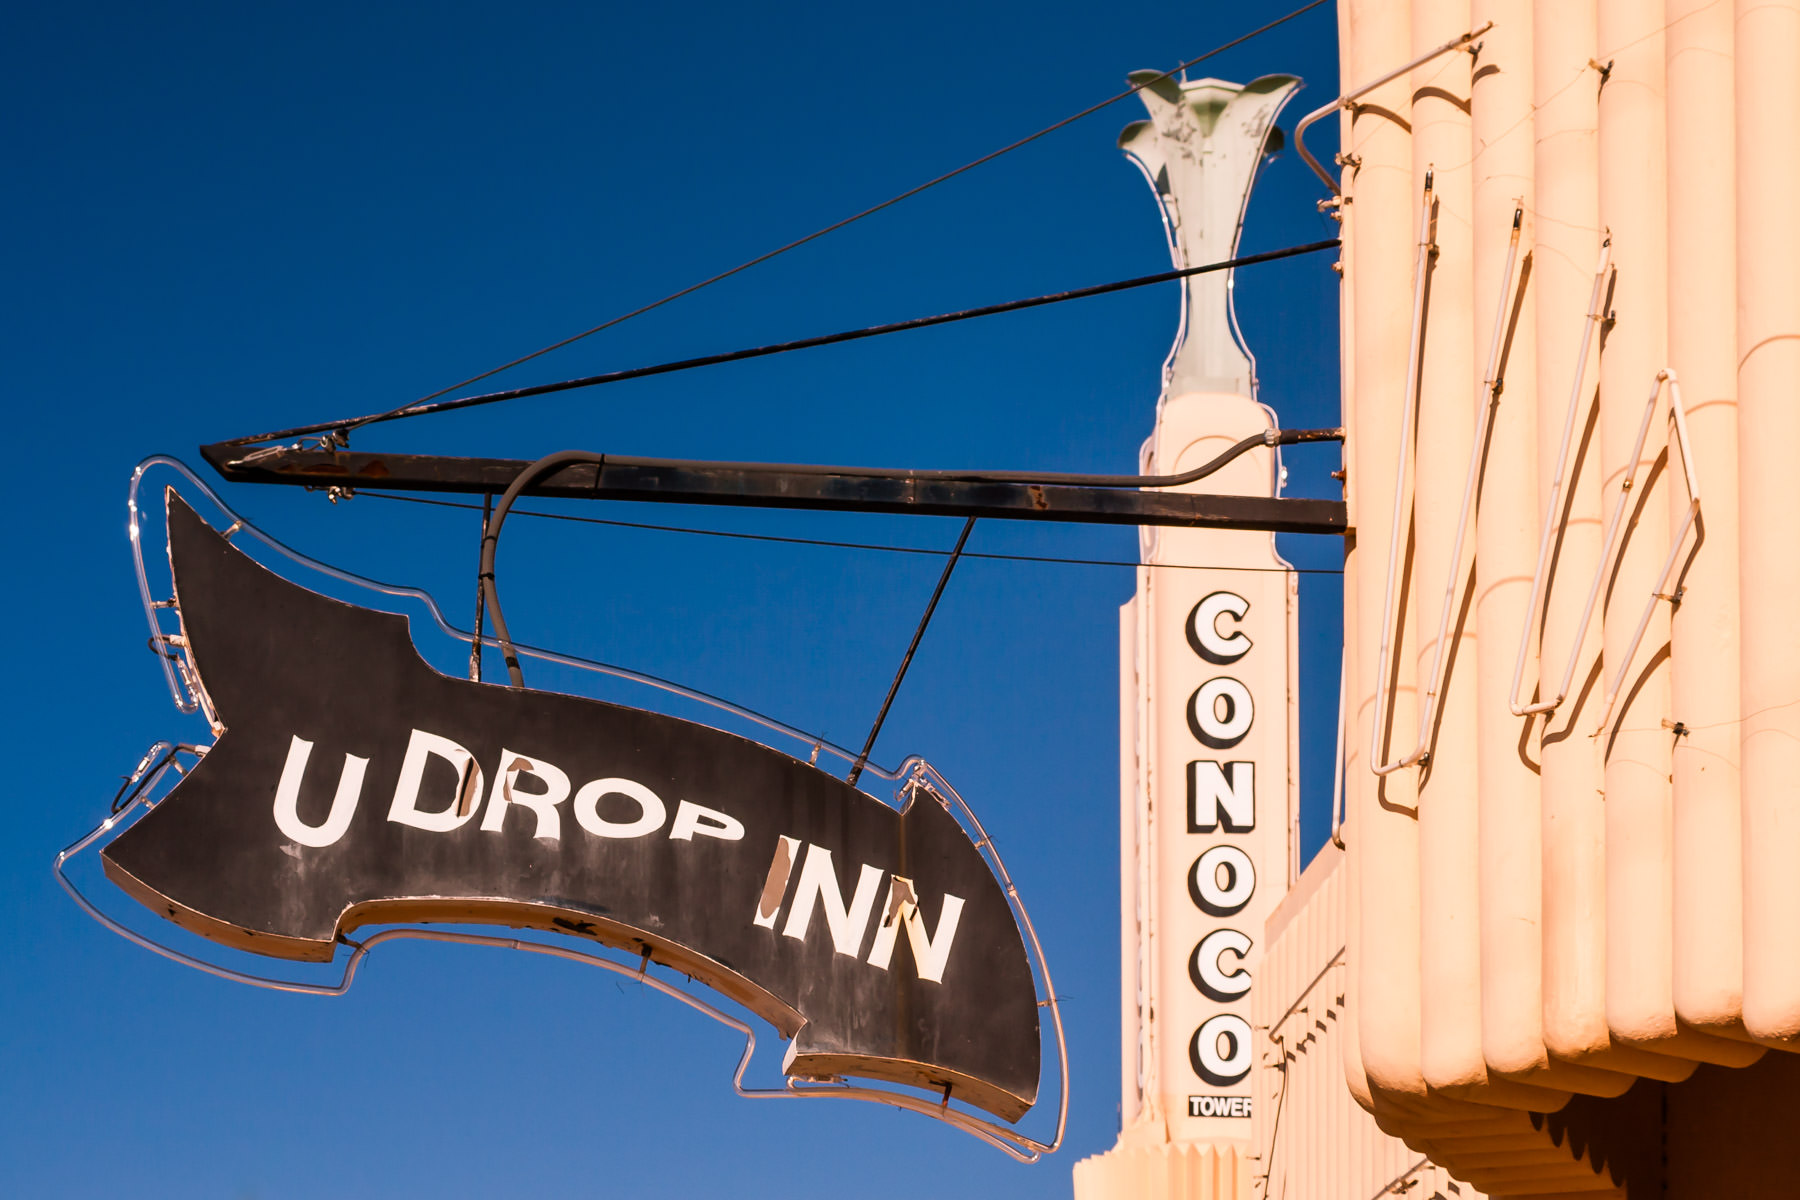 The sign at Shamrock, Texas' historic U-Drop Inn, a well-known stop along Route 66.